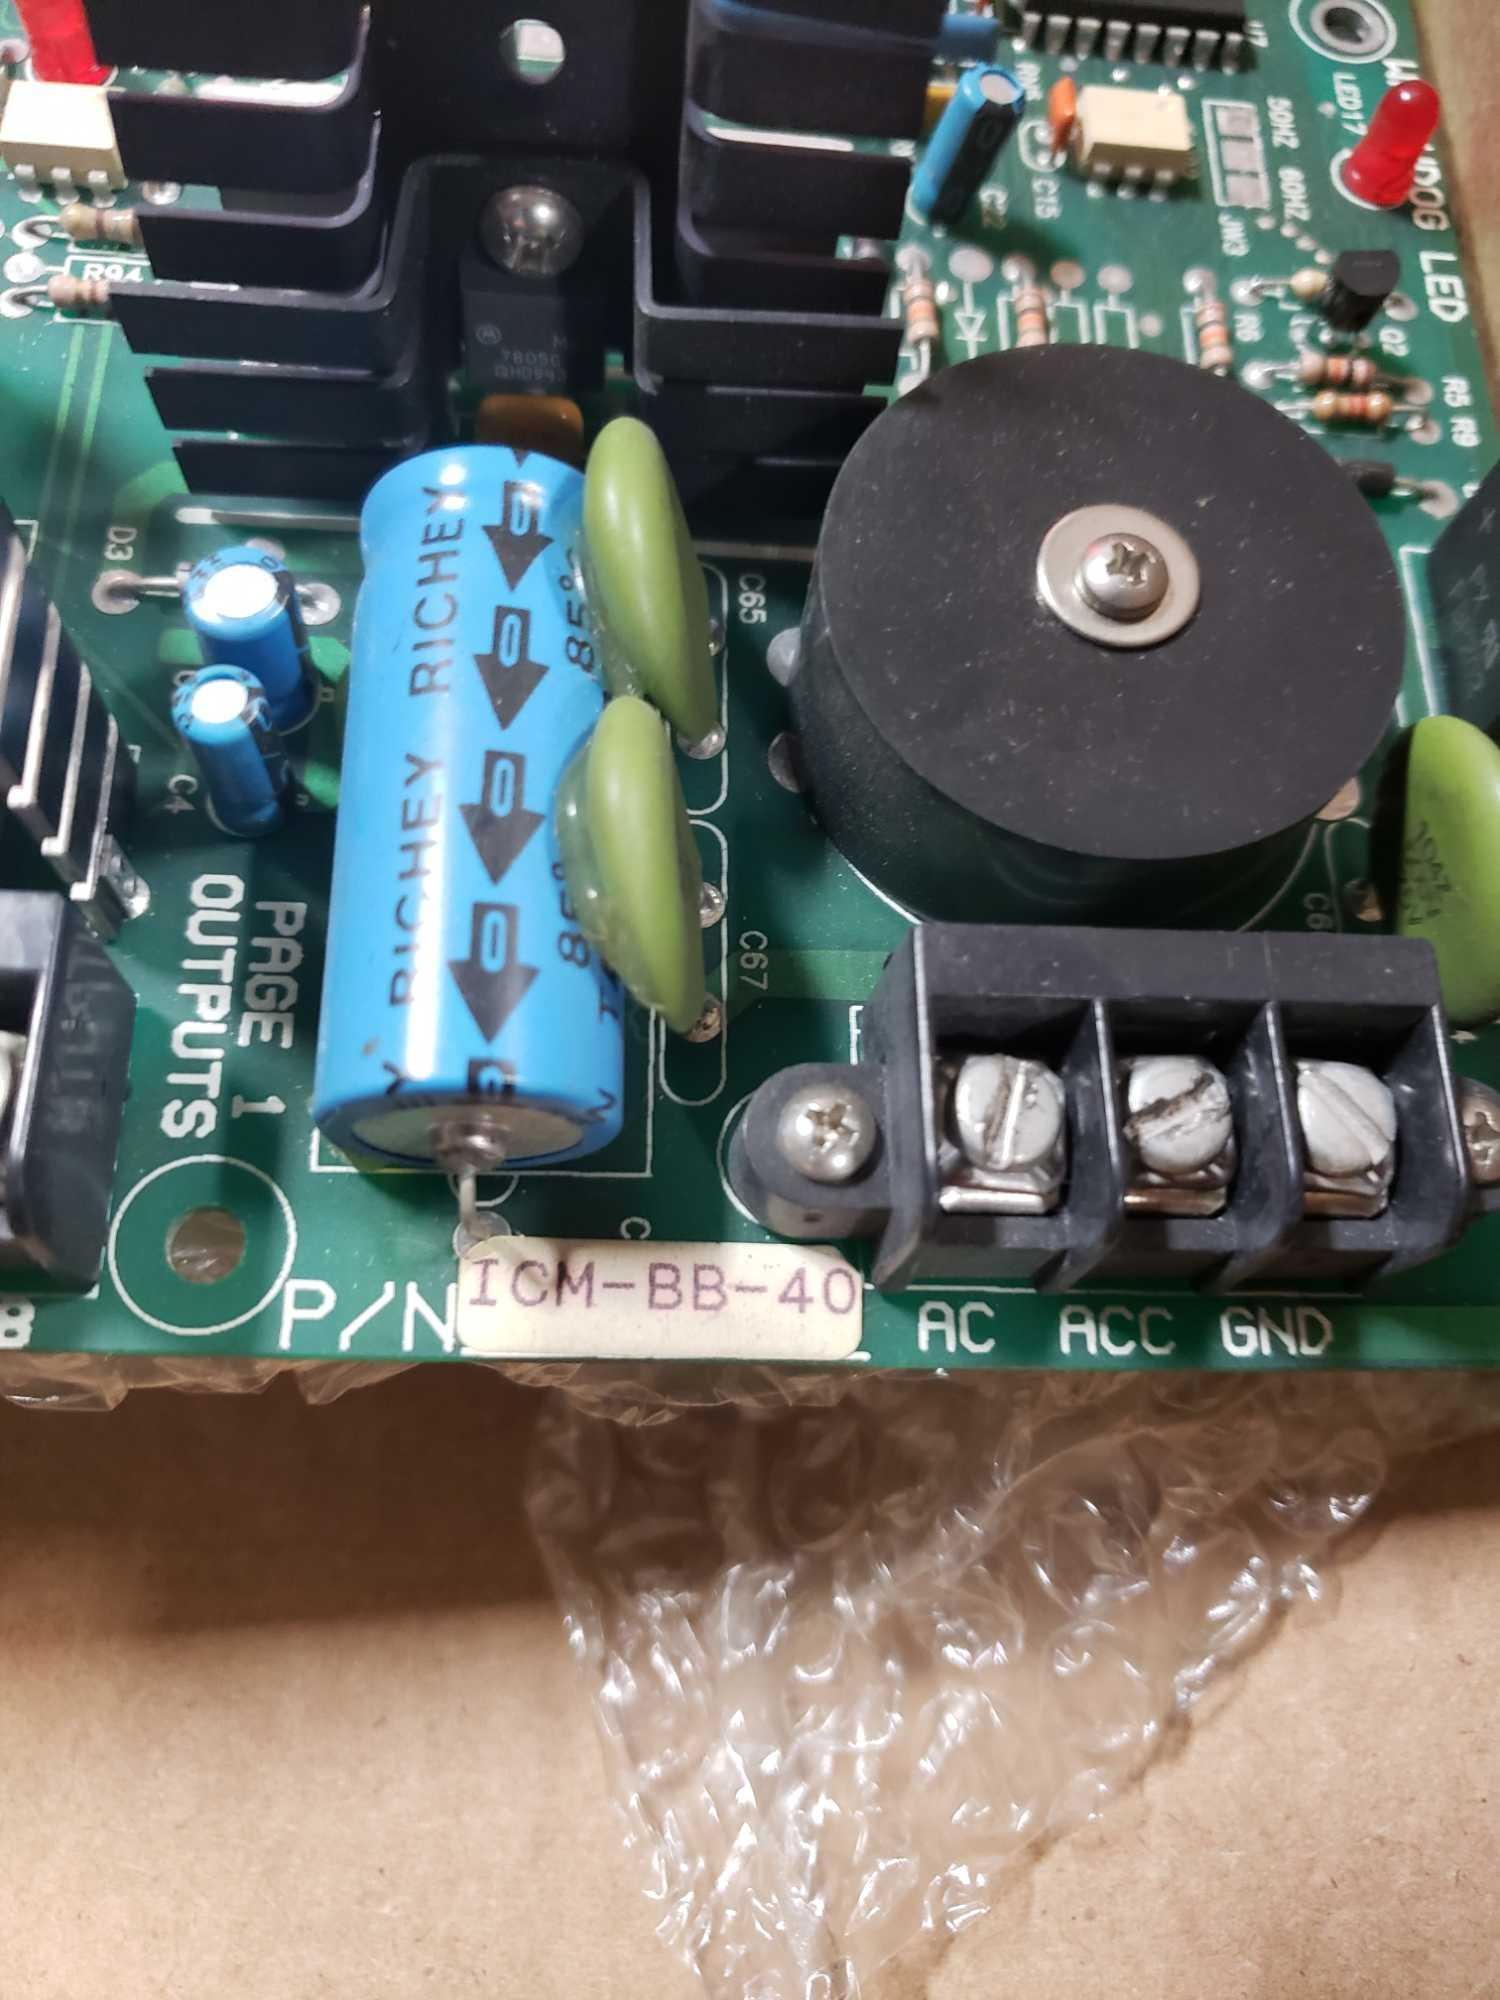 Devilbiss control board model ICM-BB-40. - Image 3 of 4